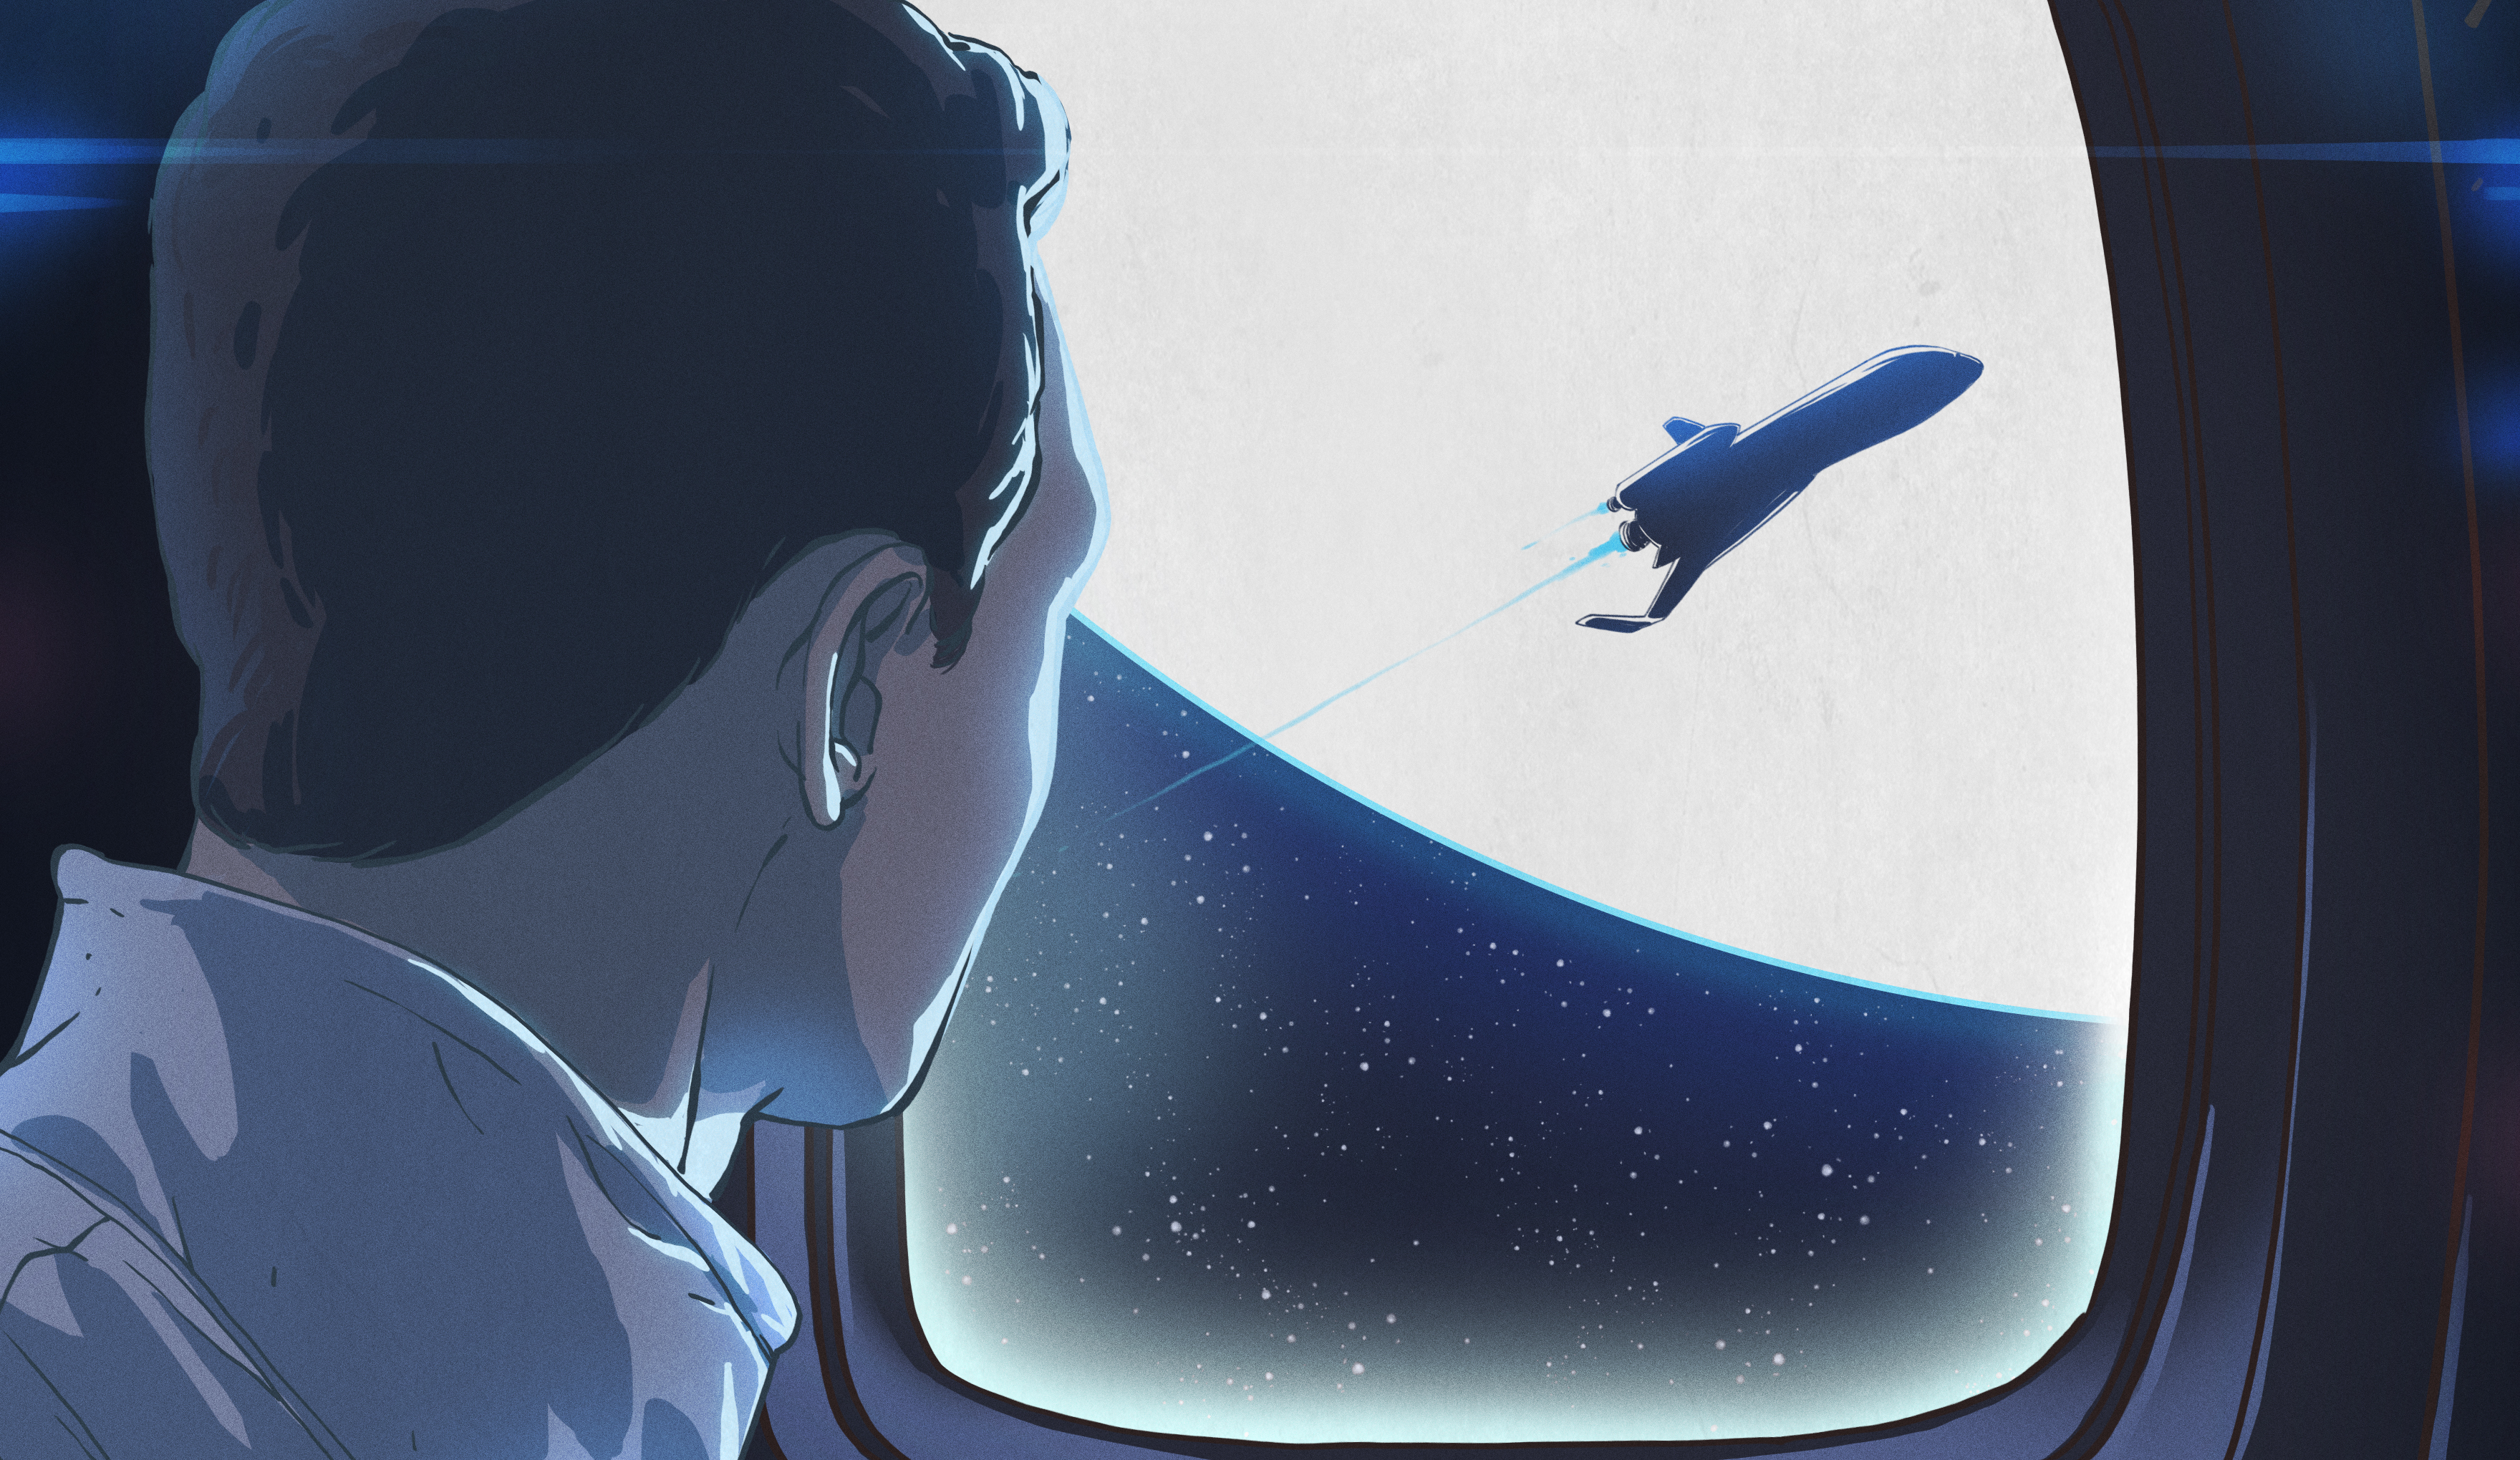 Phantom Express: The Spaceplane That Never Was